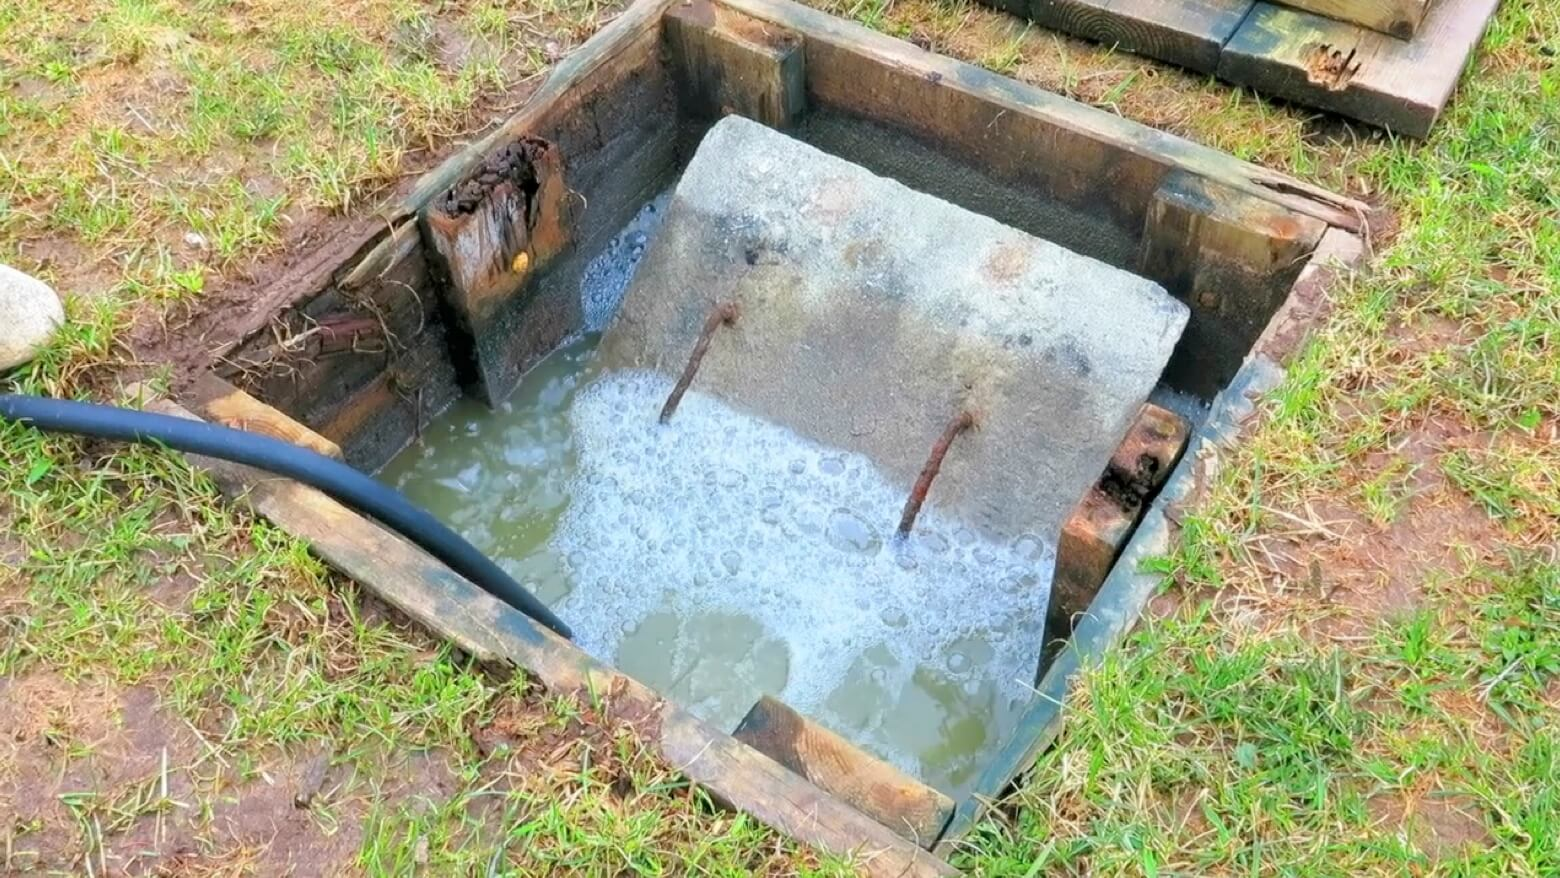 Septic Tank Pumping-Bakersfield Septic Tank Services, Installation, & Repairs-We offer Septic Service & Repairs, Septic Tank Installations, Septic Tank Cleaning, Commercial, Septic System, Drain Cleaning, Line Snaking, Portable Toilet, Grease Trap Pumping & Cleaning, Septic Tank Pumping, Sewage Pump, Sewer Line Repair, Septic Tank Replacement, Septic Maintenance, Sewer Line Replacement, Porta Potty Rentals